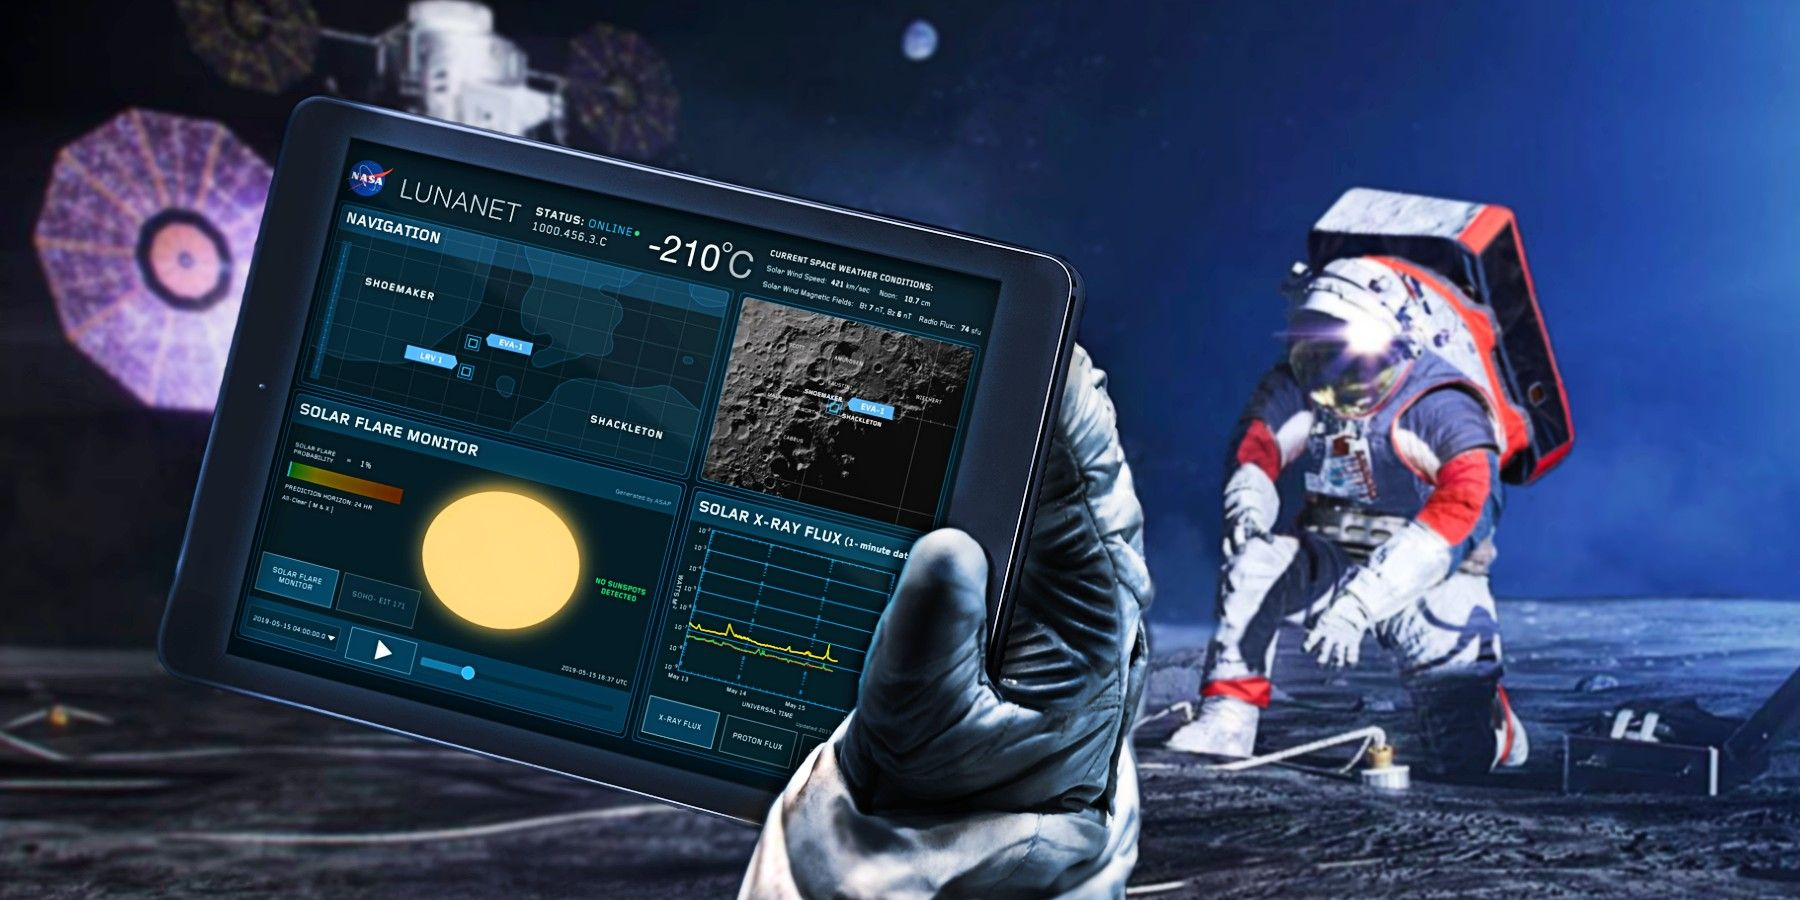 NASA Develops 'Internet' For The Moon And Beyond